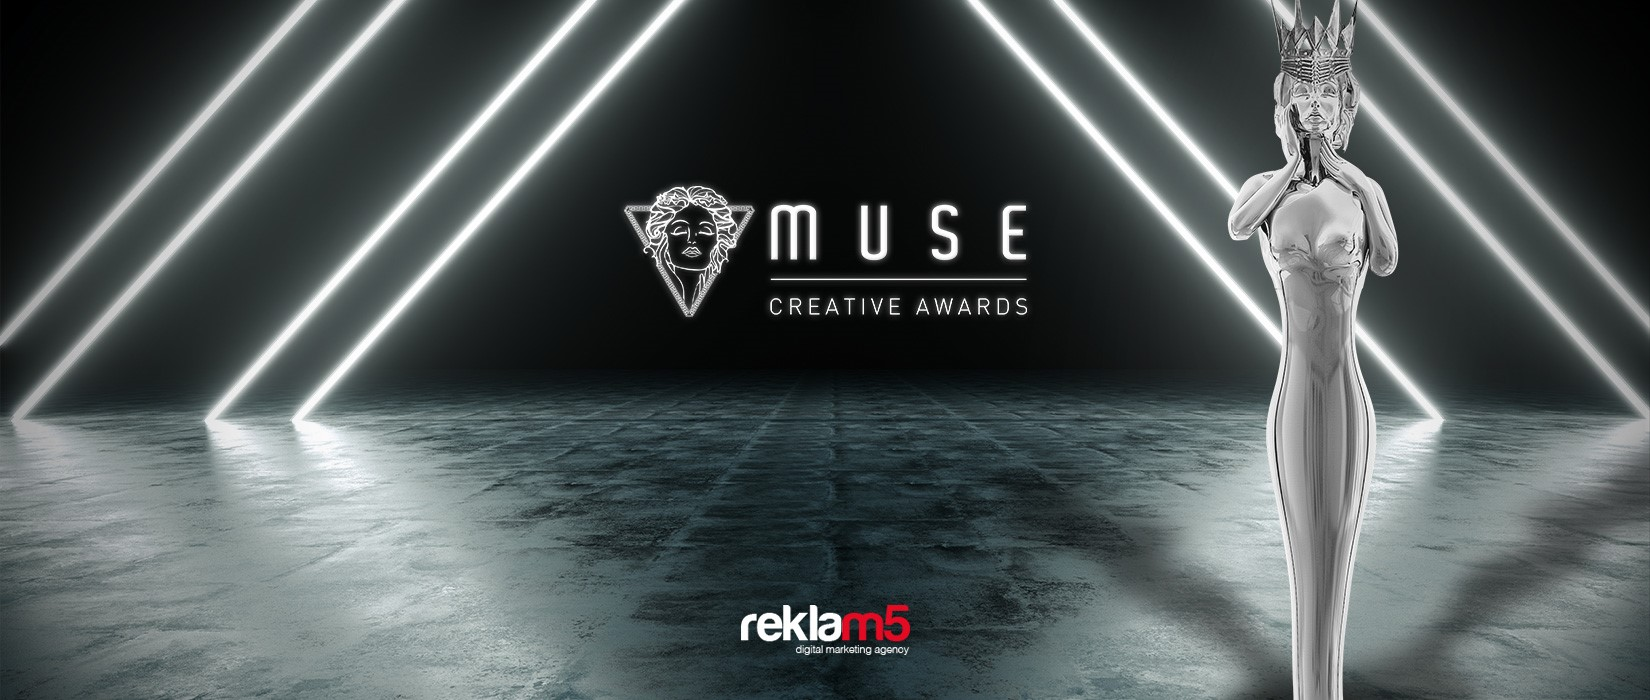 Reklam5 Has Mentioned It's Name One More Time With Successes In Muse Creative Awards!